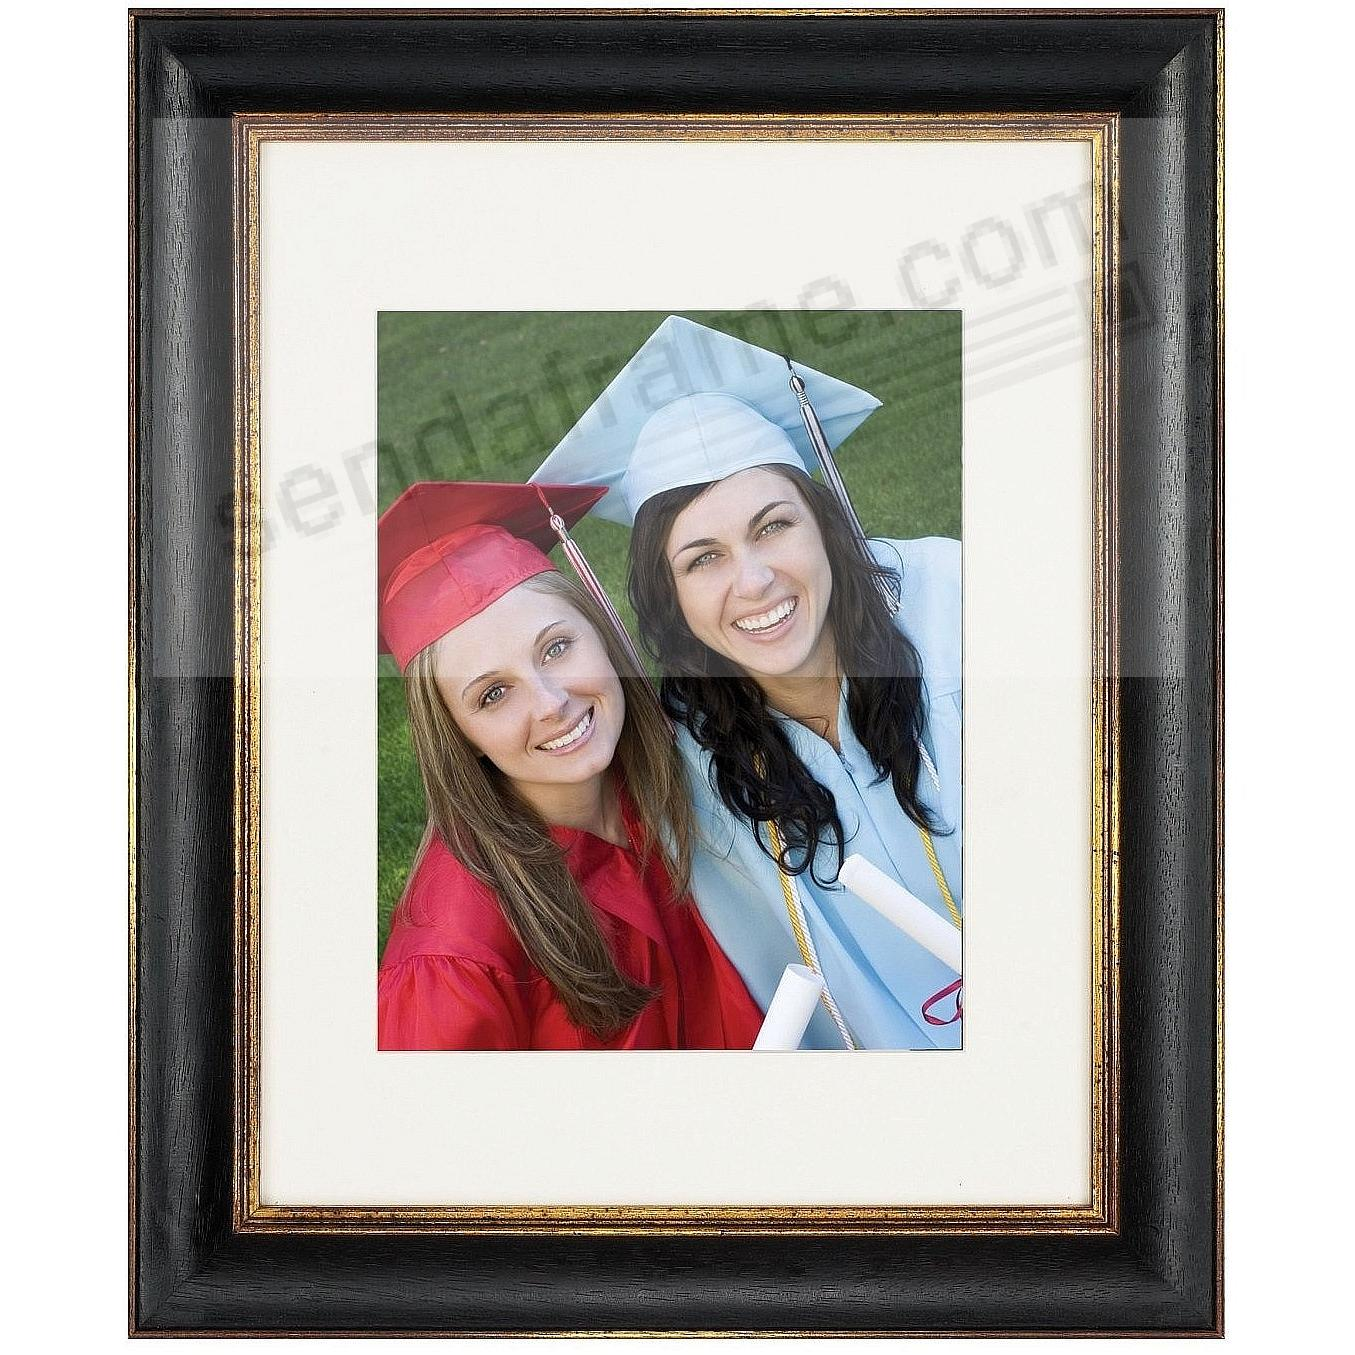 Gold Matted Frames Matted Wood Frame 5x7/8x10